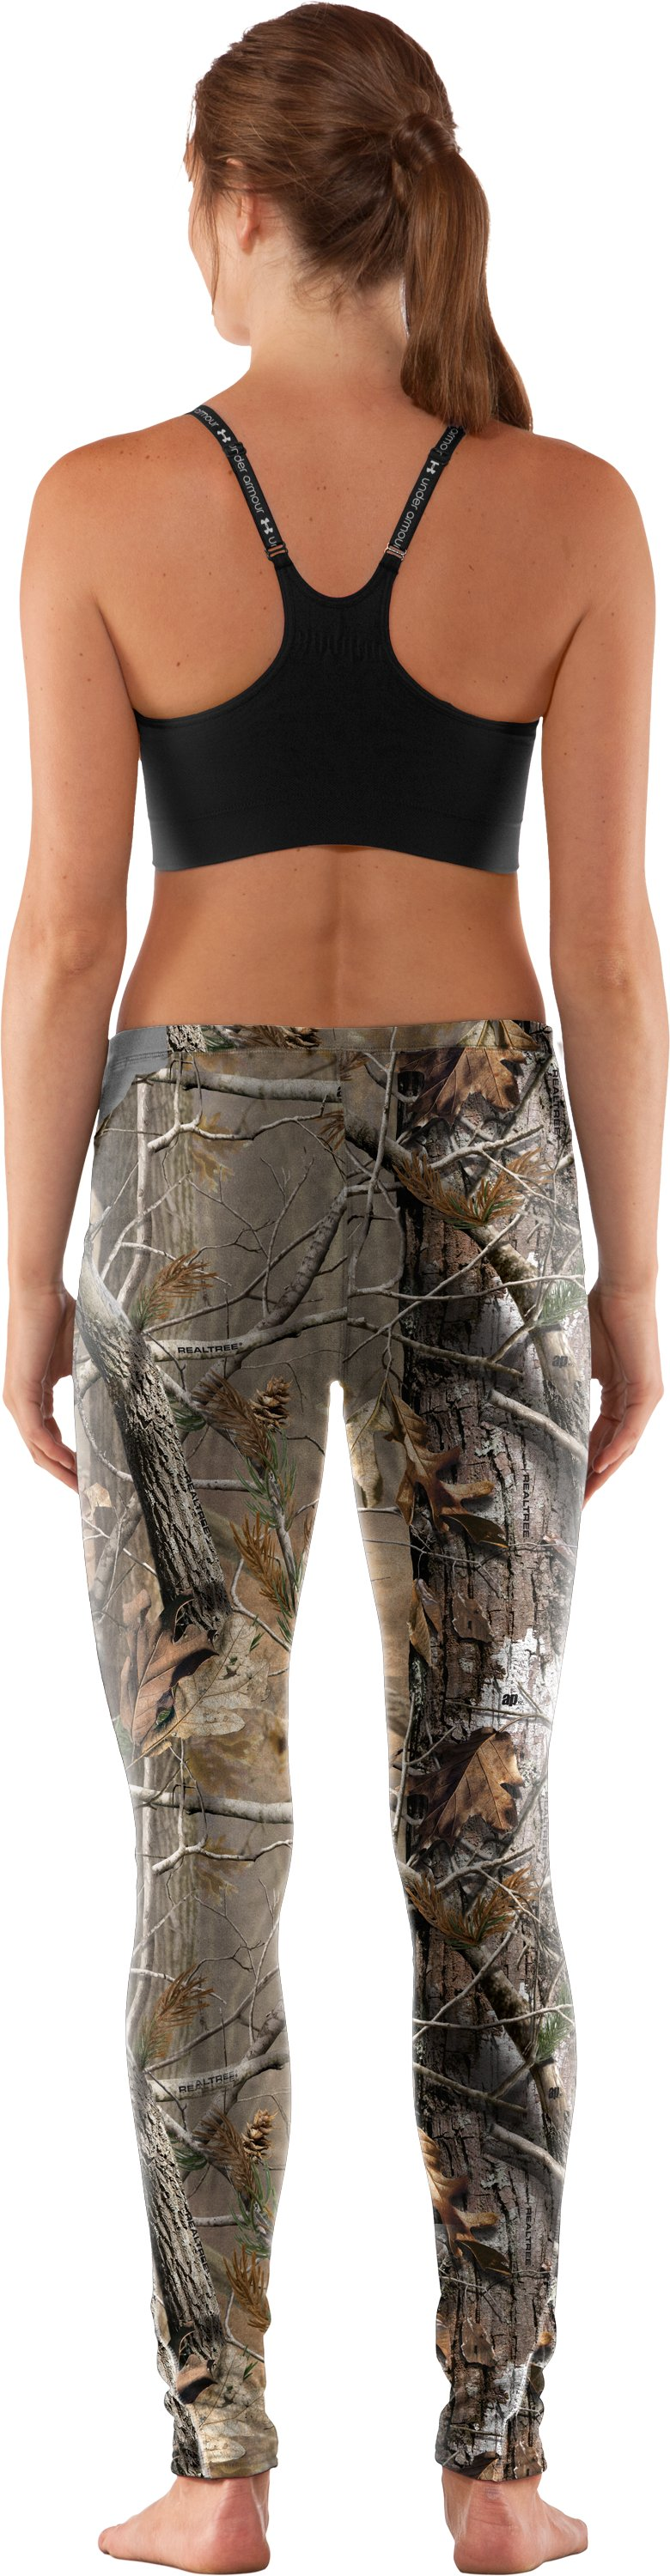 Women's EVO Scent Control Leggings, Realtree AP, Back